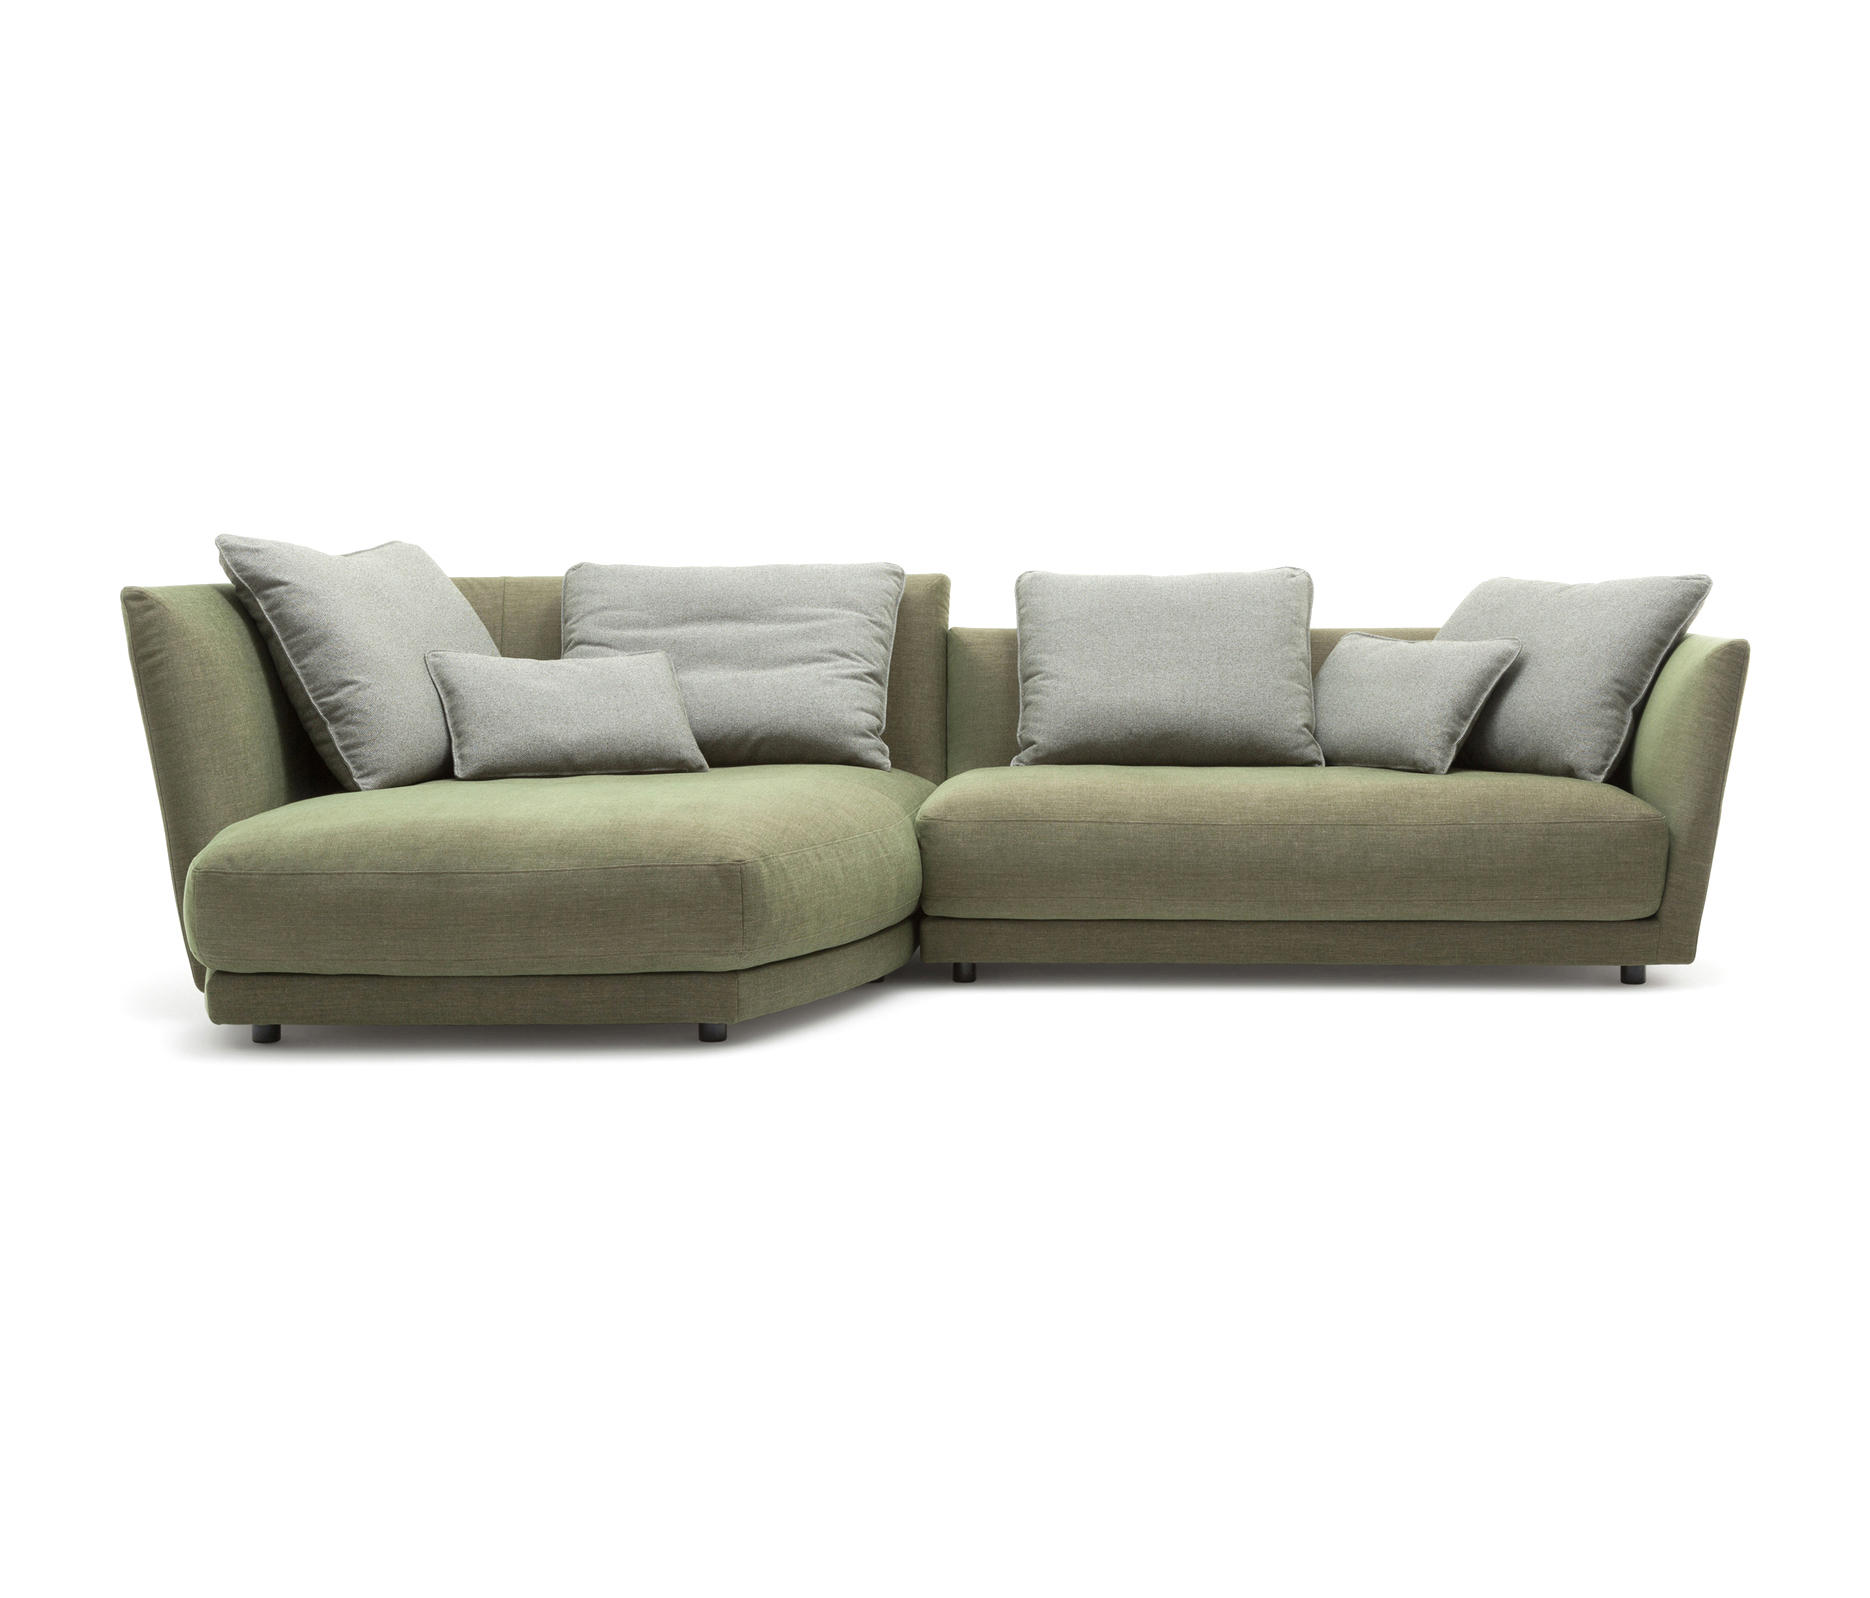 Rolf benz tondo modular sofa systems from rolf benz for Rolf benz nagold